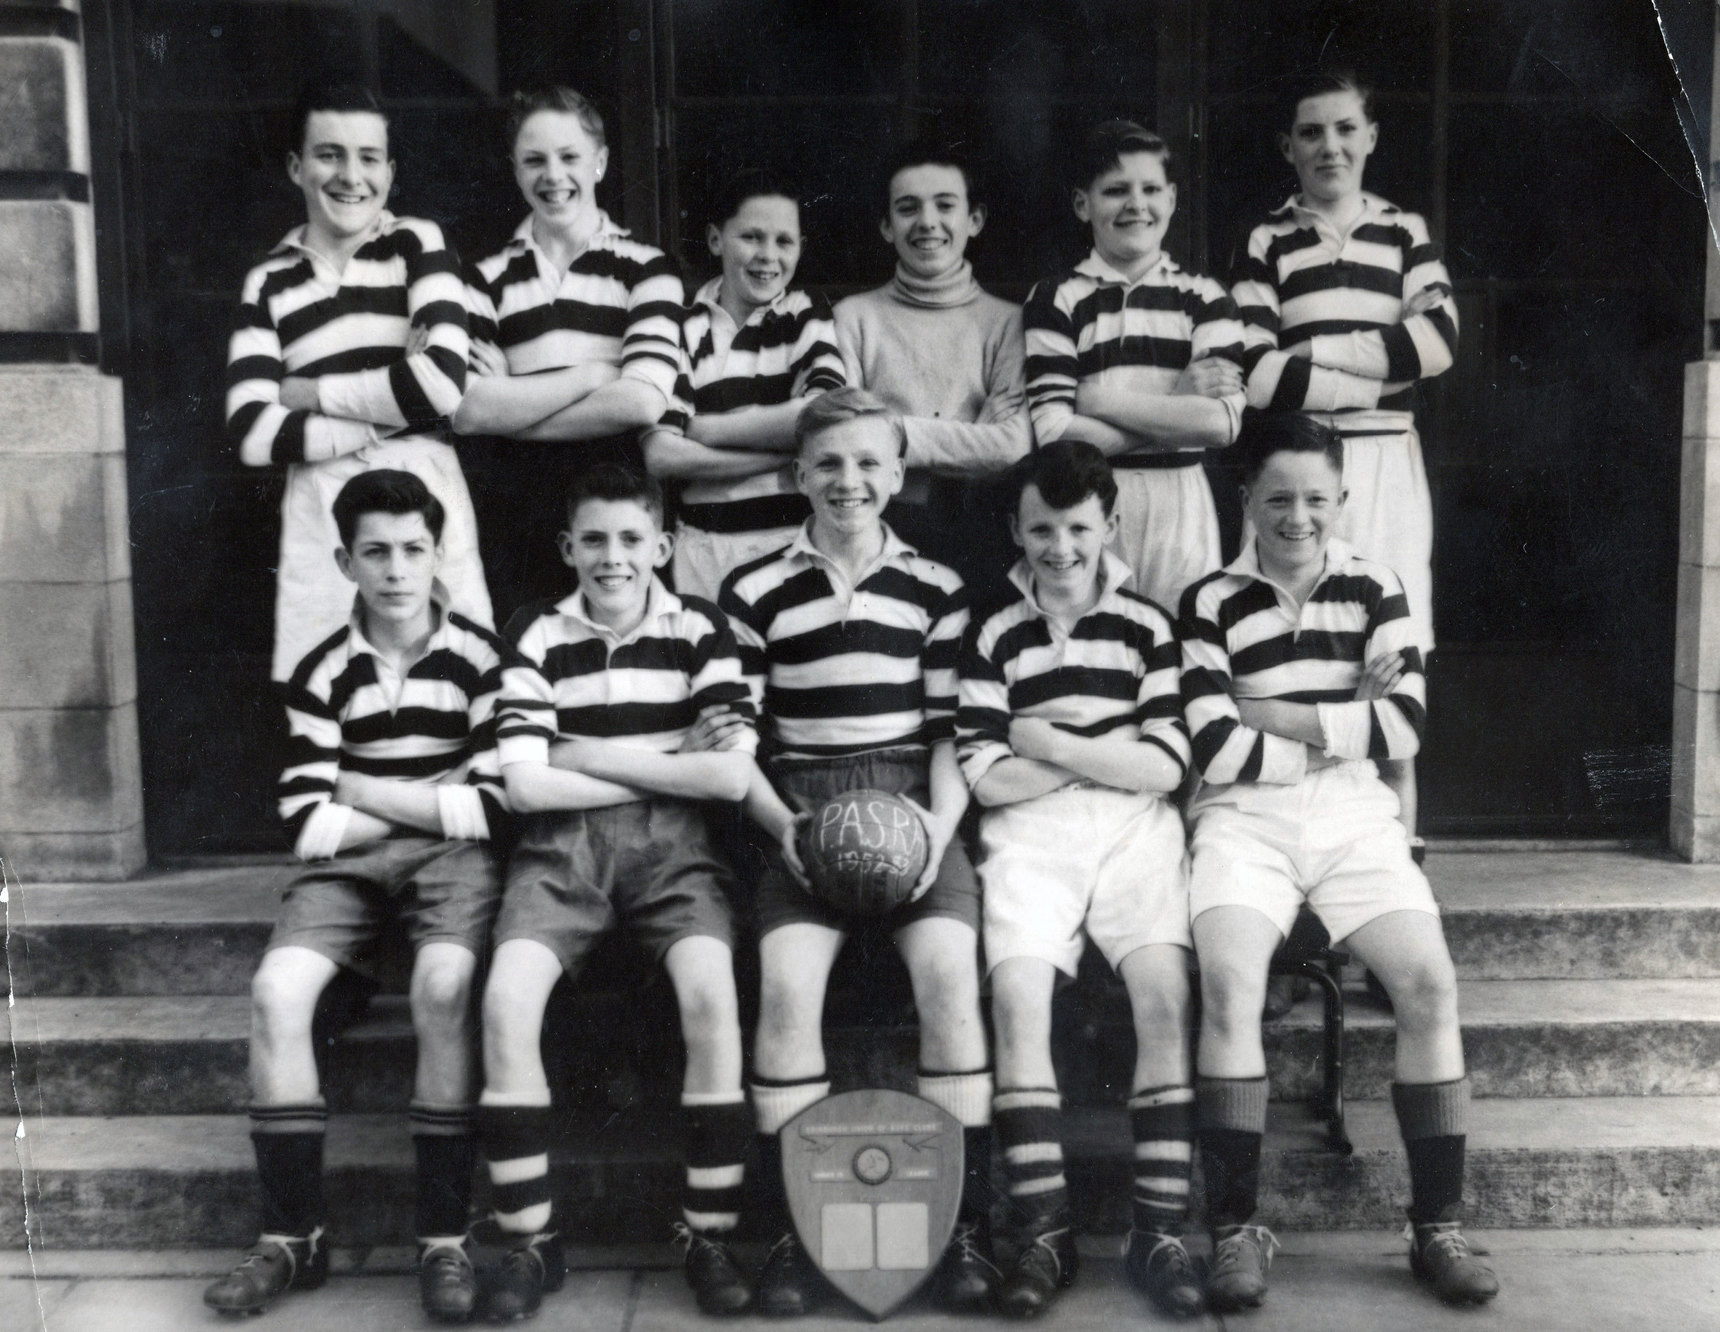 PASRA / Sighthill Thistle Football Team c.1953